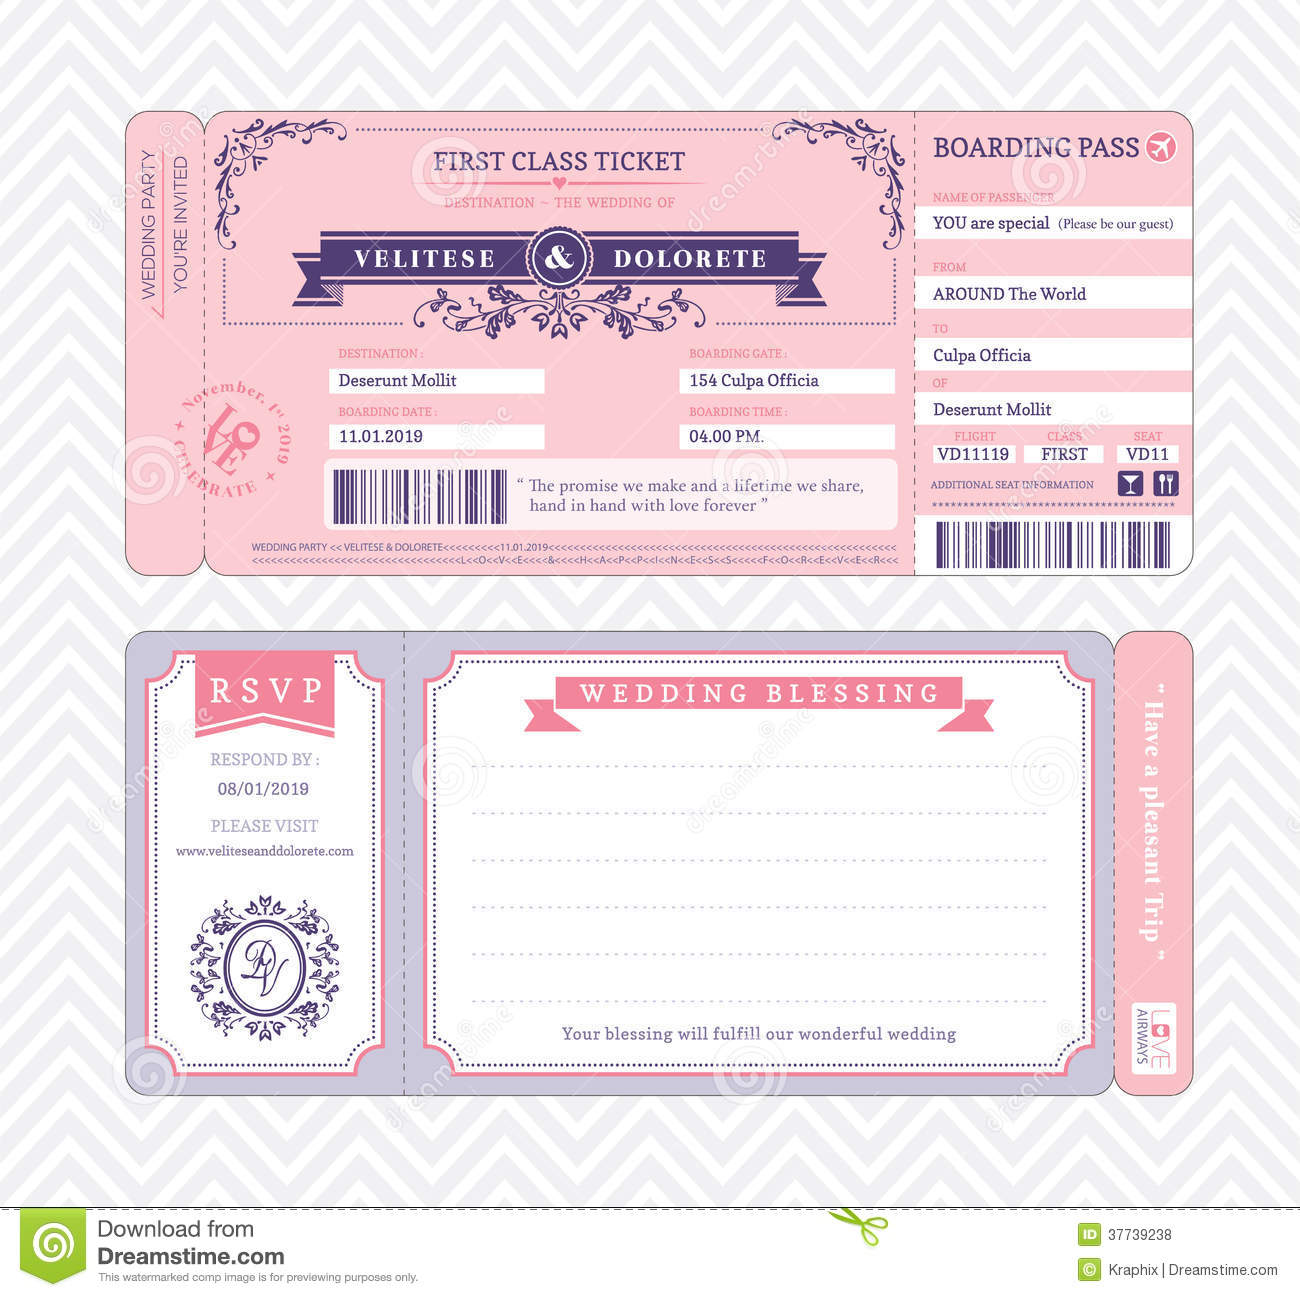 boarding pass birthday invitation template free - Forte.euforic.co